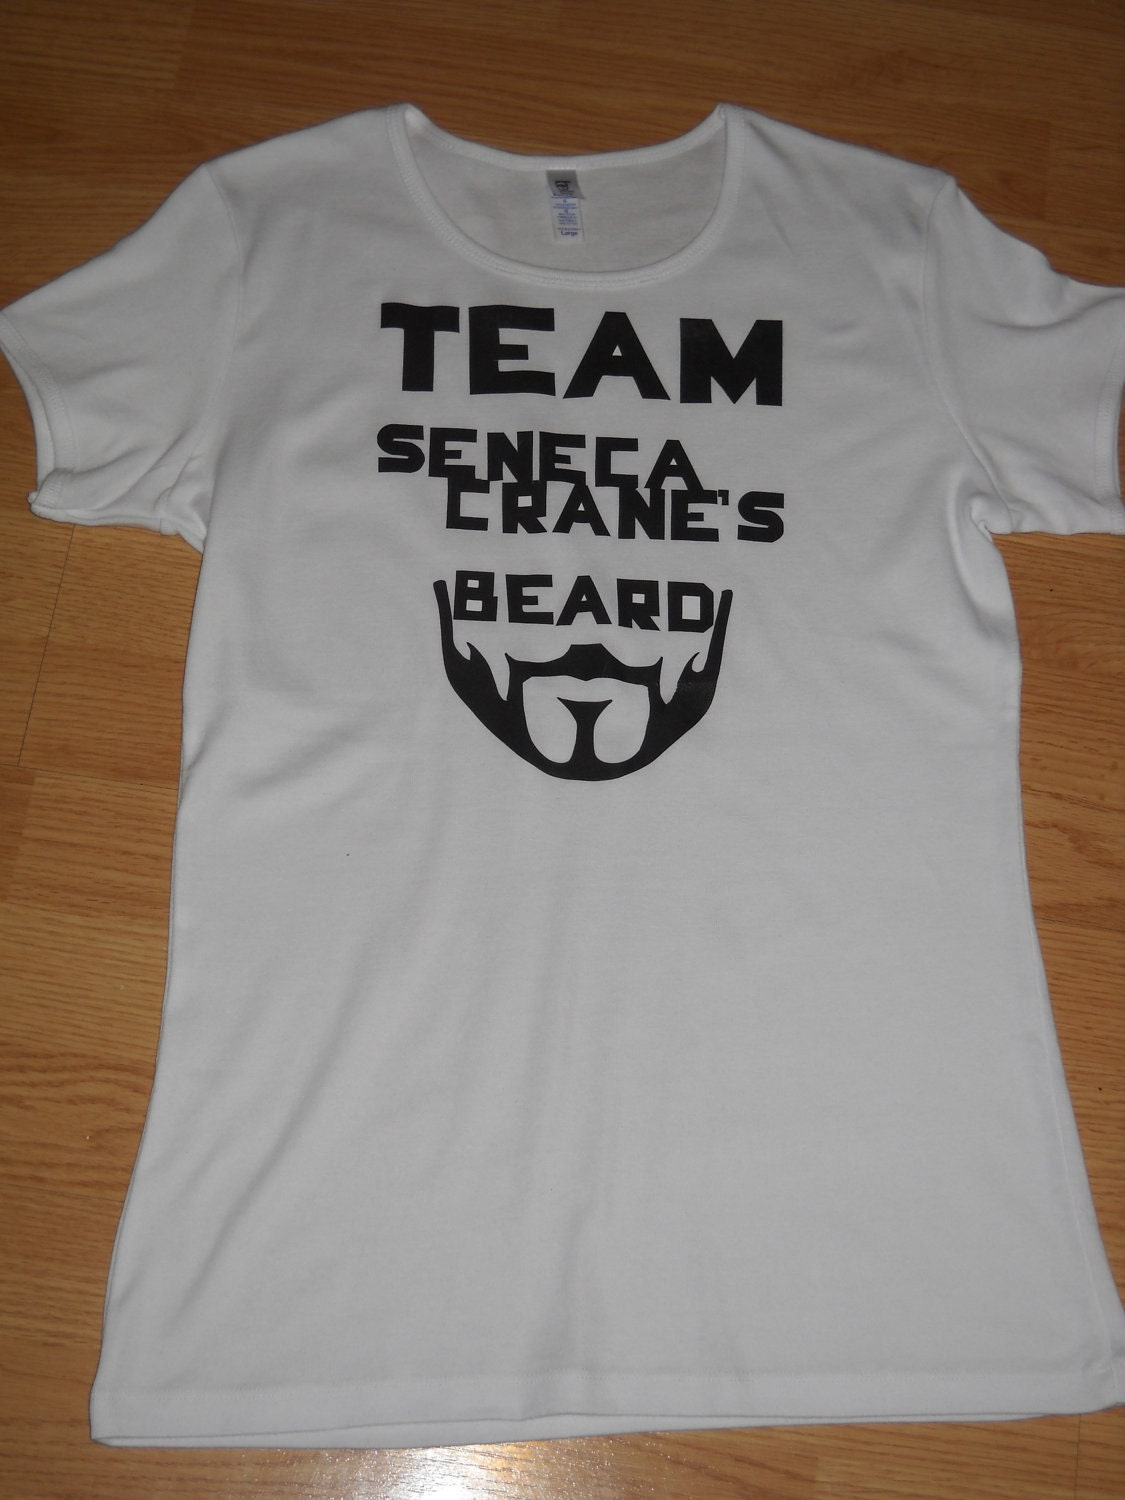 Team Seneca Crane's Beard - Hunger Games shirt ((Sm-XL / 2 Shirt styles))